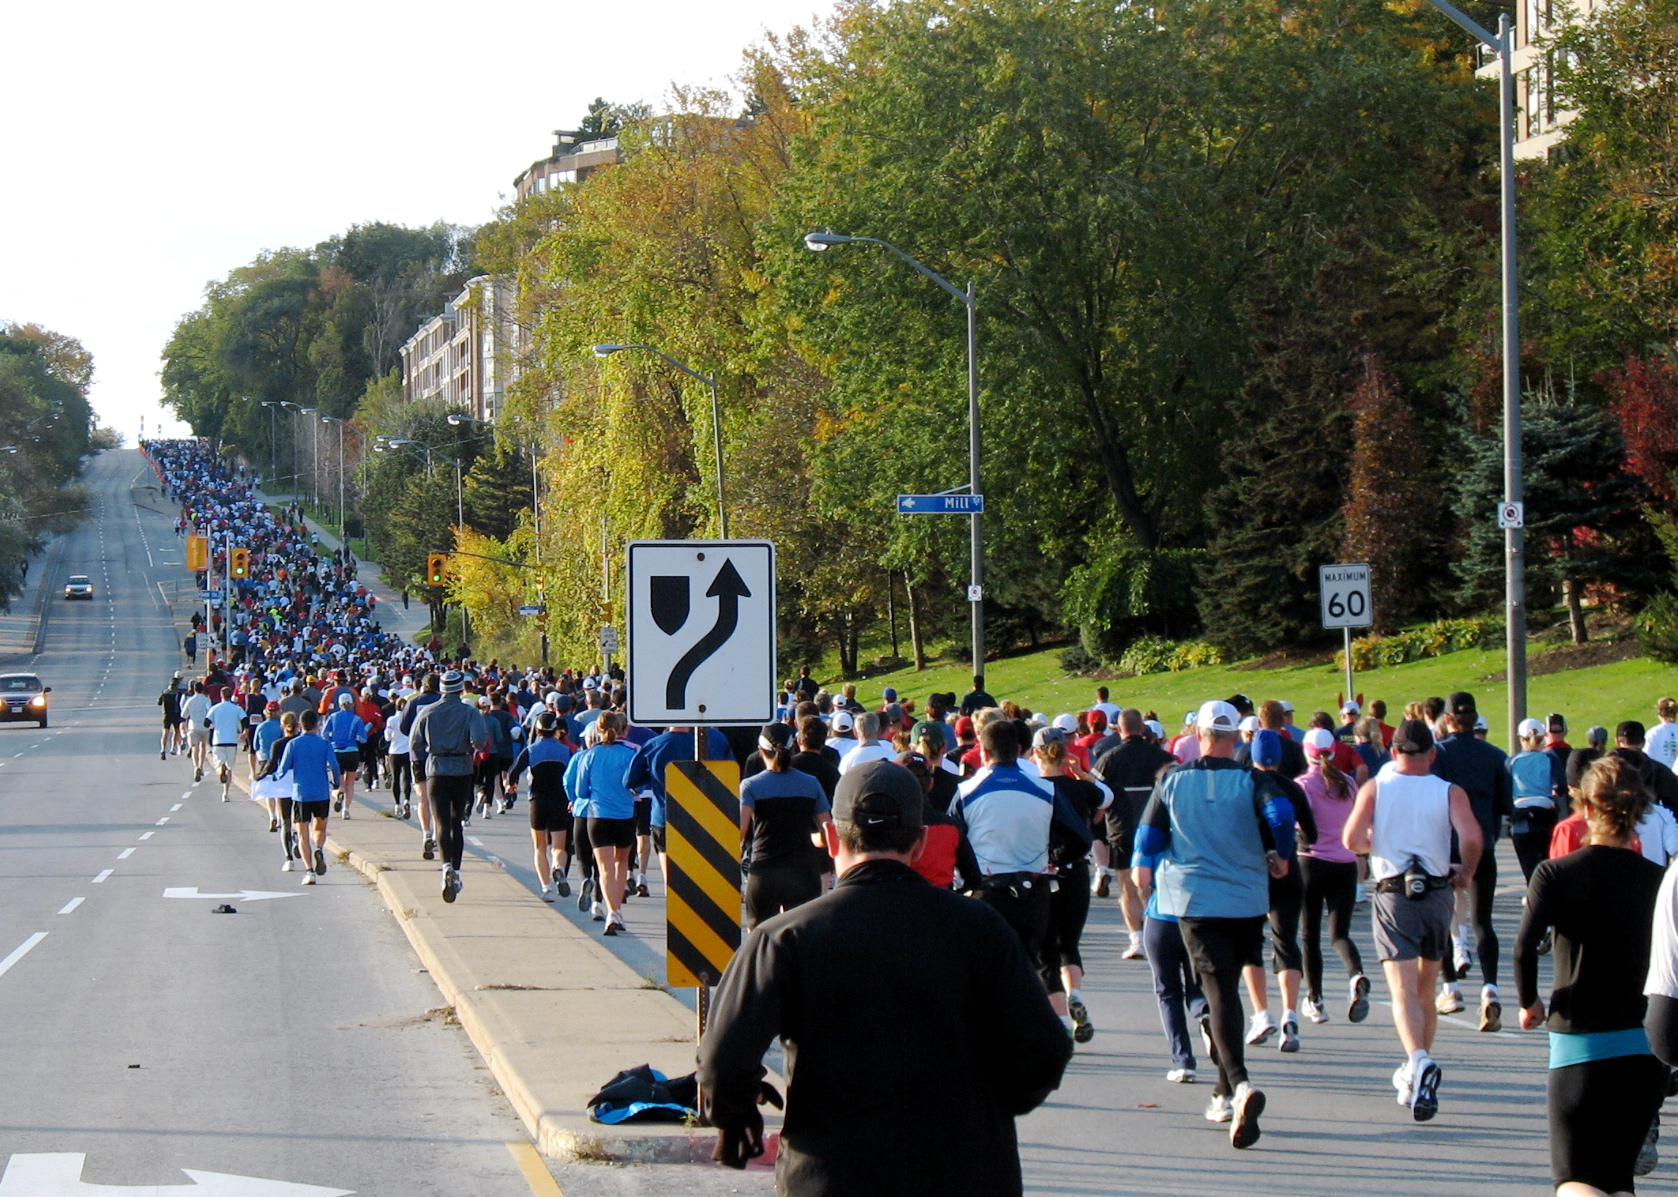 Toronto Marathon runners up Hogg's Hollow - Image credit ben_lawson on flickr